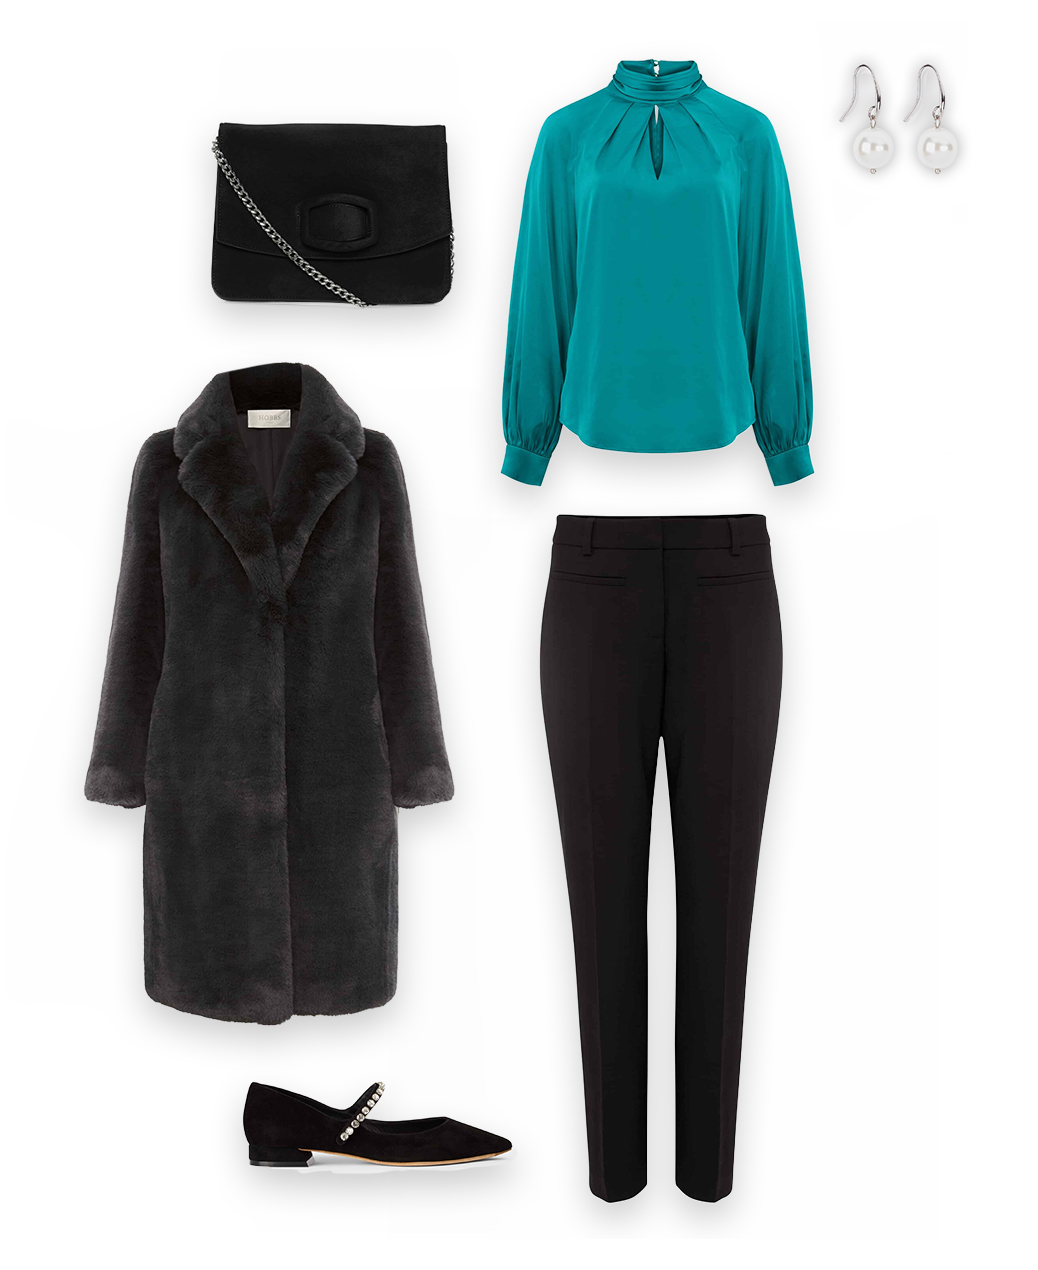 Collage of a green satin blouse, grey faux fur coat, black trousers, black embellished shoes, pearl drop earrings and a black clutch bag that together create an outfit.